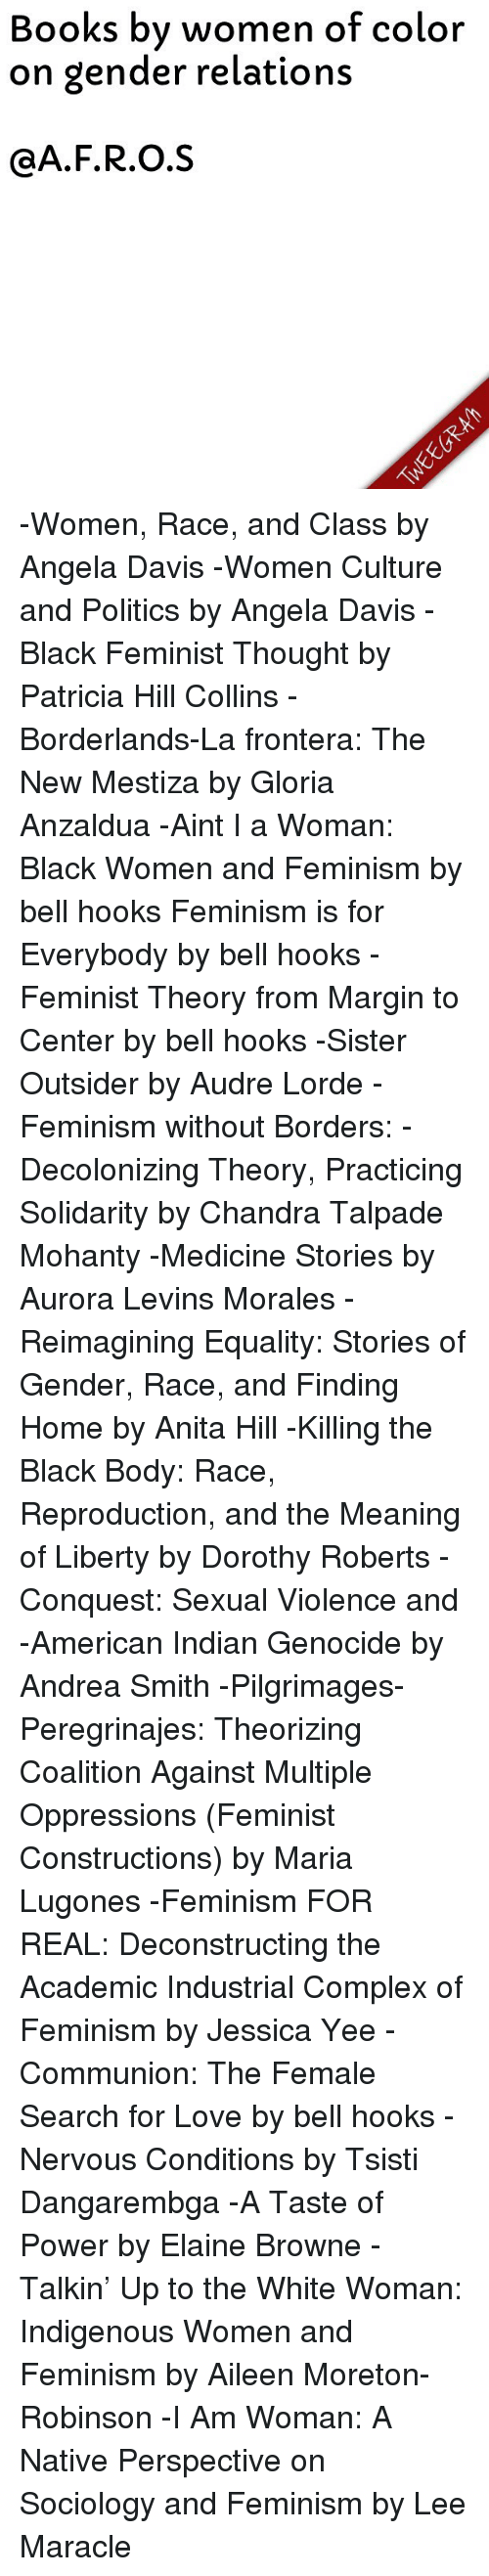 Books By Women Of Color On Gender Relations Cafros Women Race And